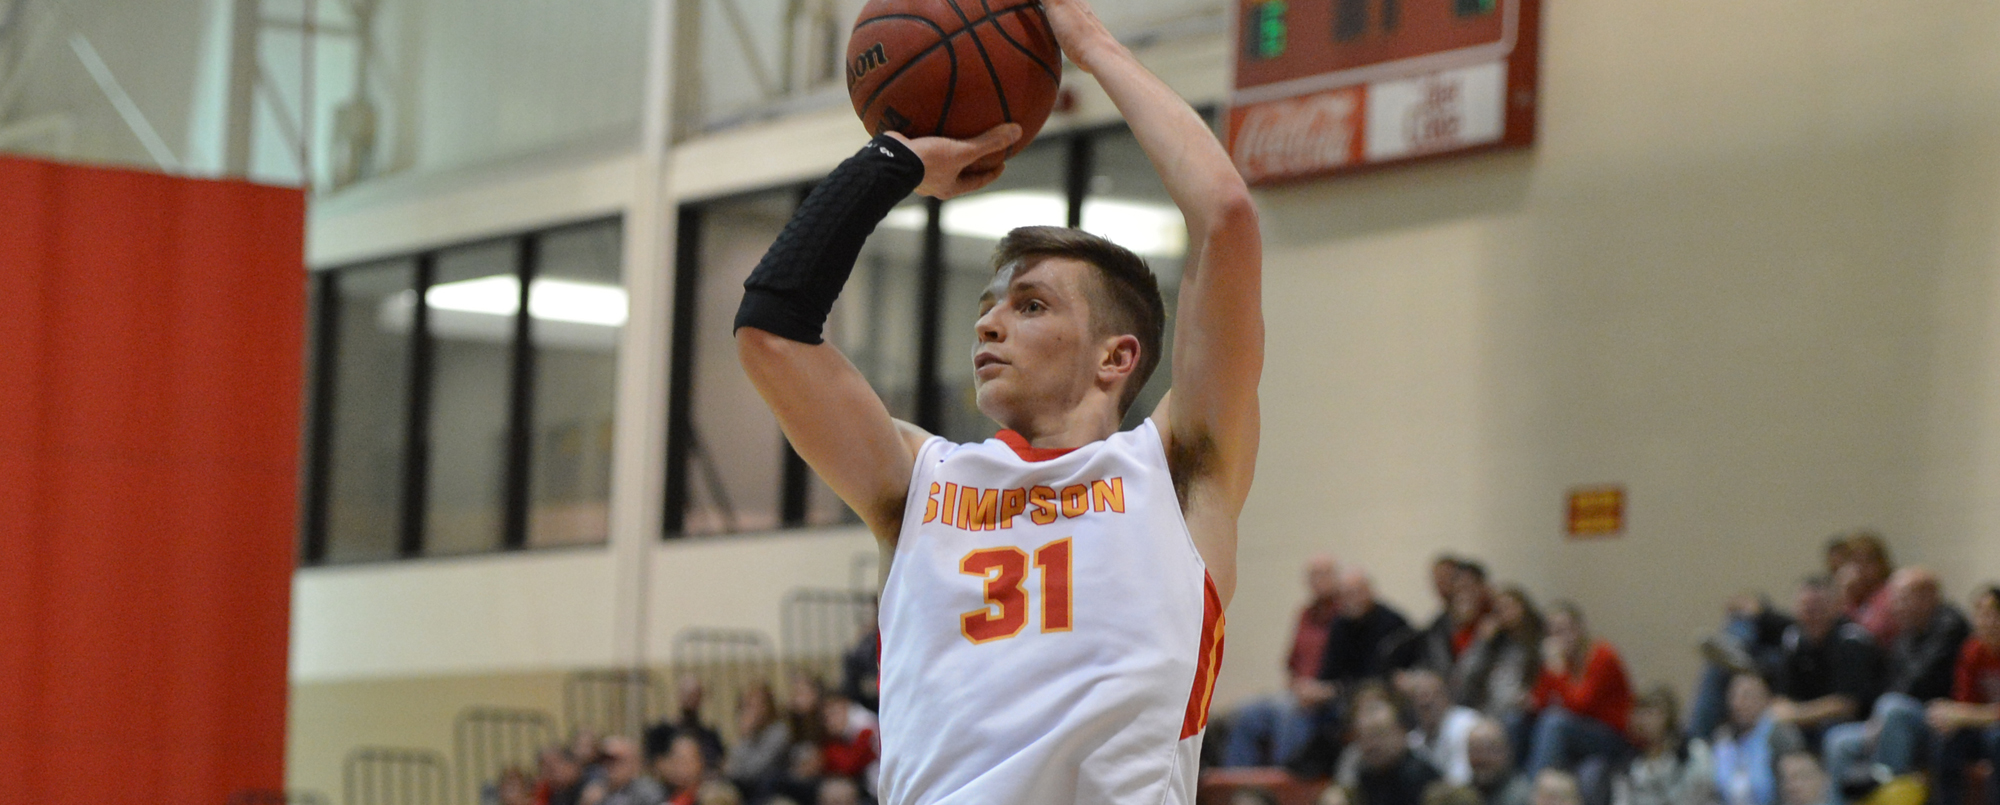 Ryan Skaar scored 13 points in the Storm's 67-62 win at Coe on Saturday, Jan. 21.